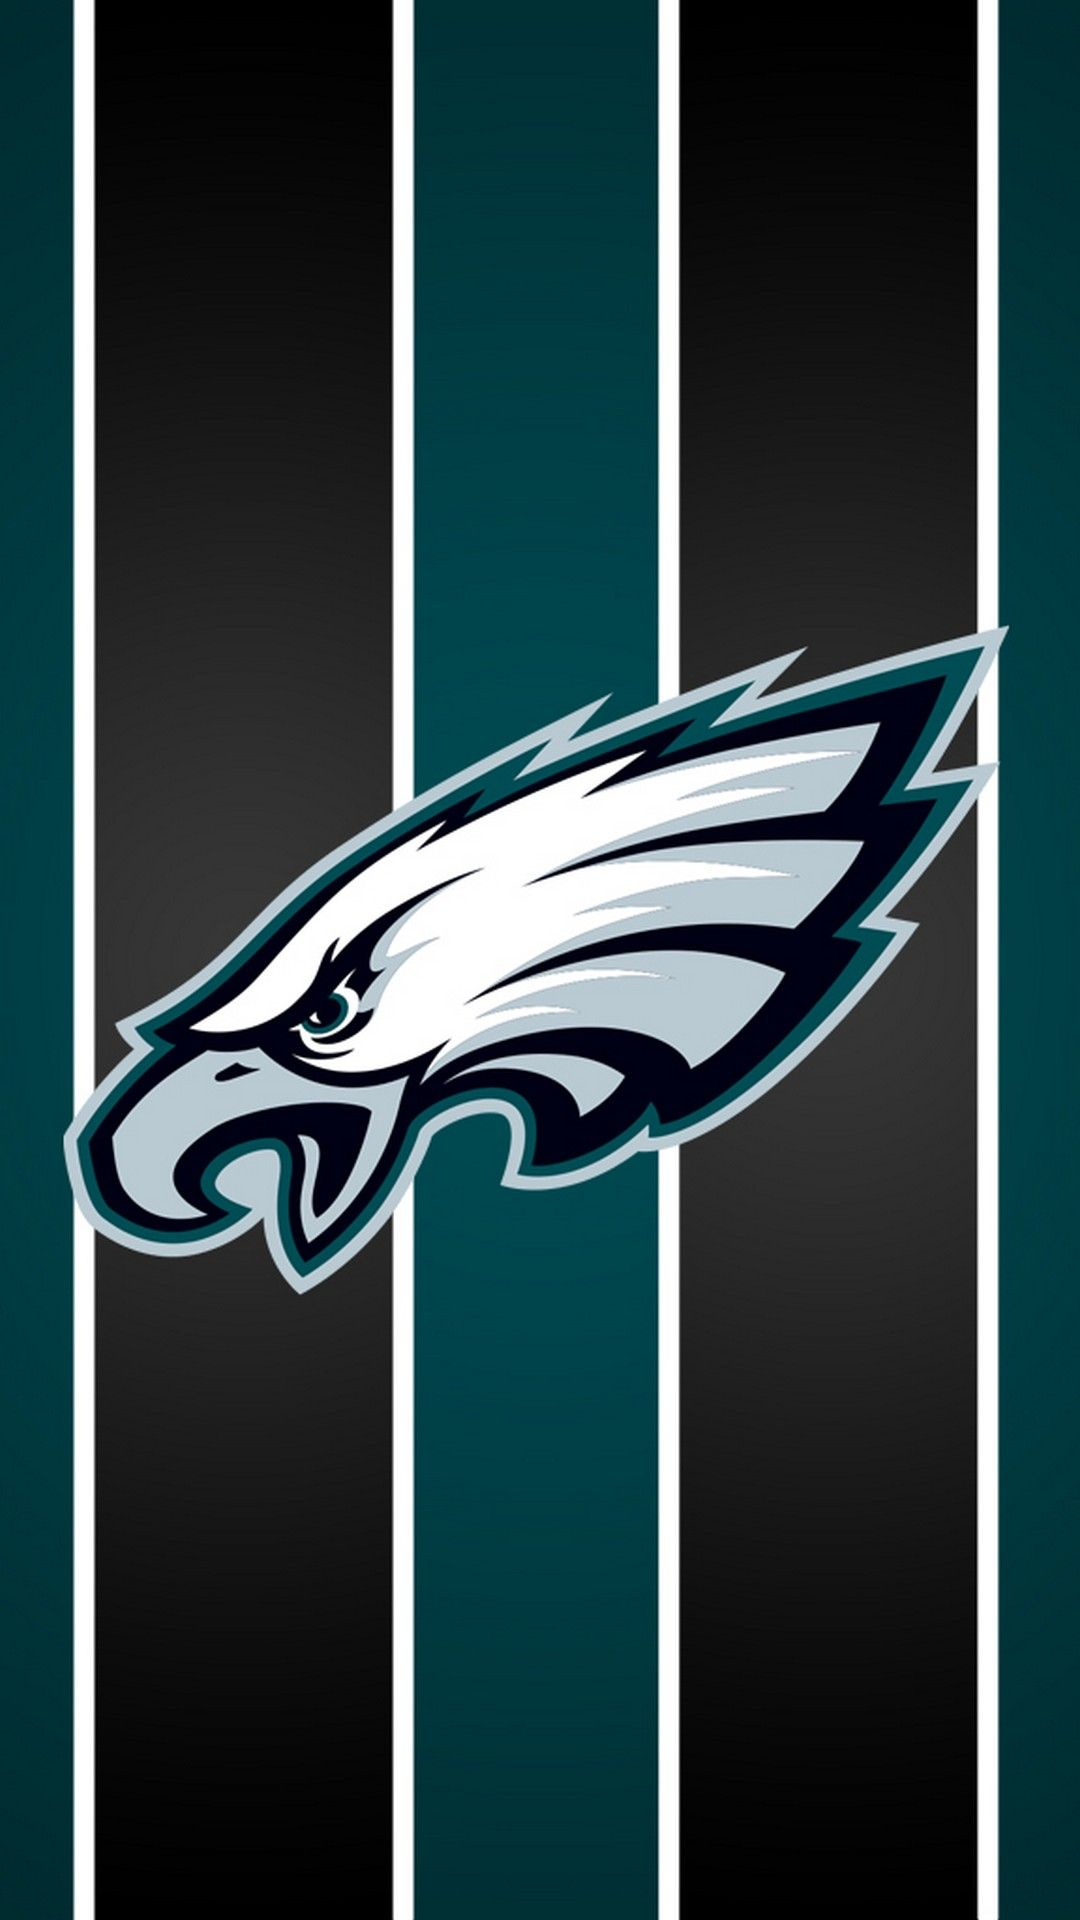 Eagles Football Hd Wallpaper For Iphone 2020 Nfl Football Wallpapers Nfl Football Wallpaper Philadelphia Eagles Wallpaper Philadelphia Eagles Colors